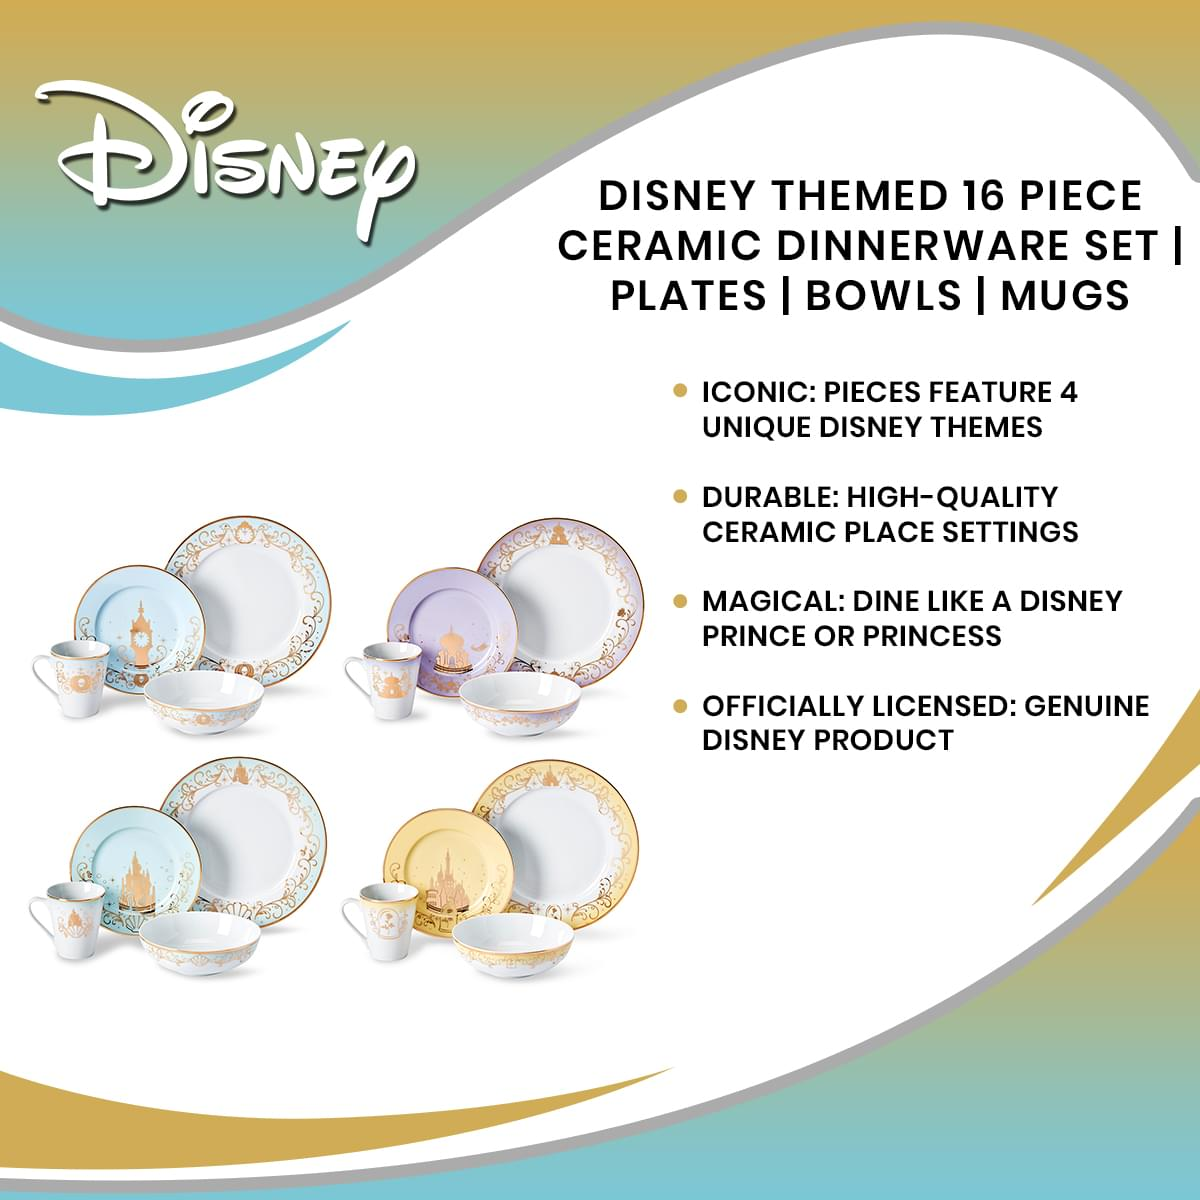 Disney Themed 16 Piece Ceramic Dinnerware Set Collection 1 | Plates | Bowls | Mugs